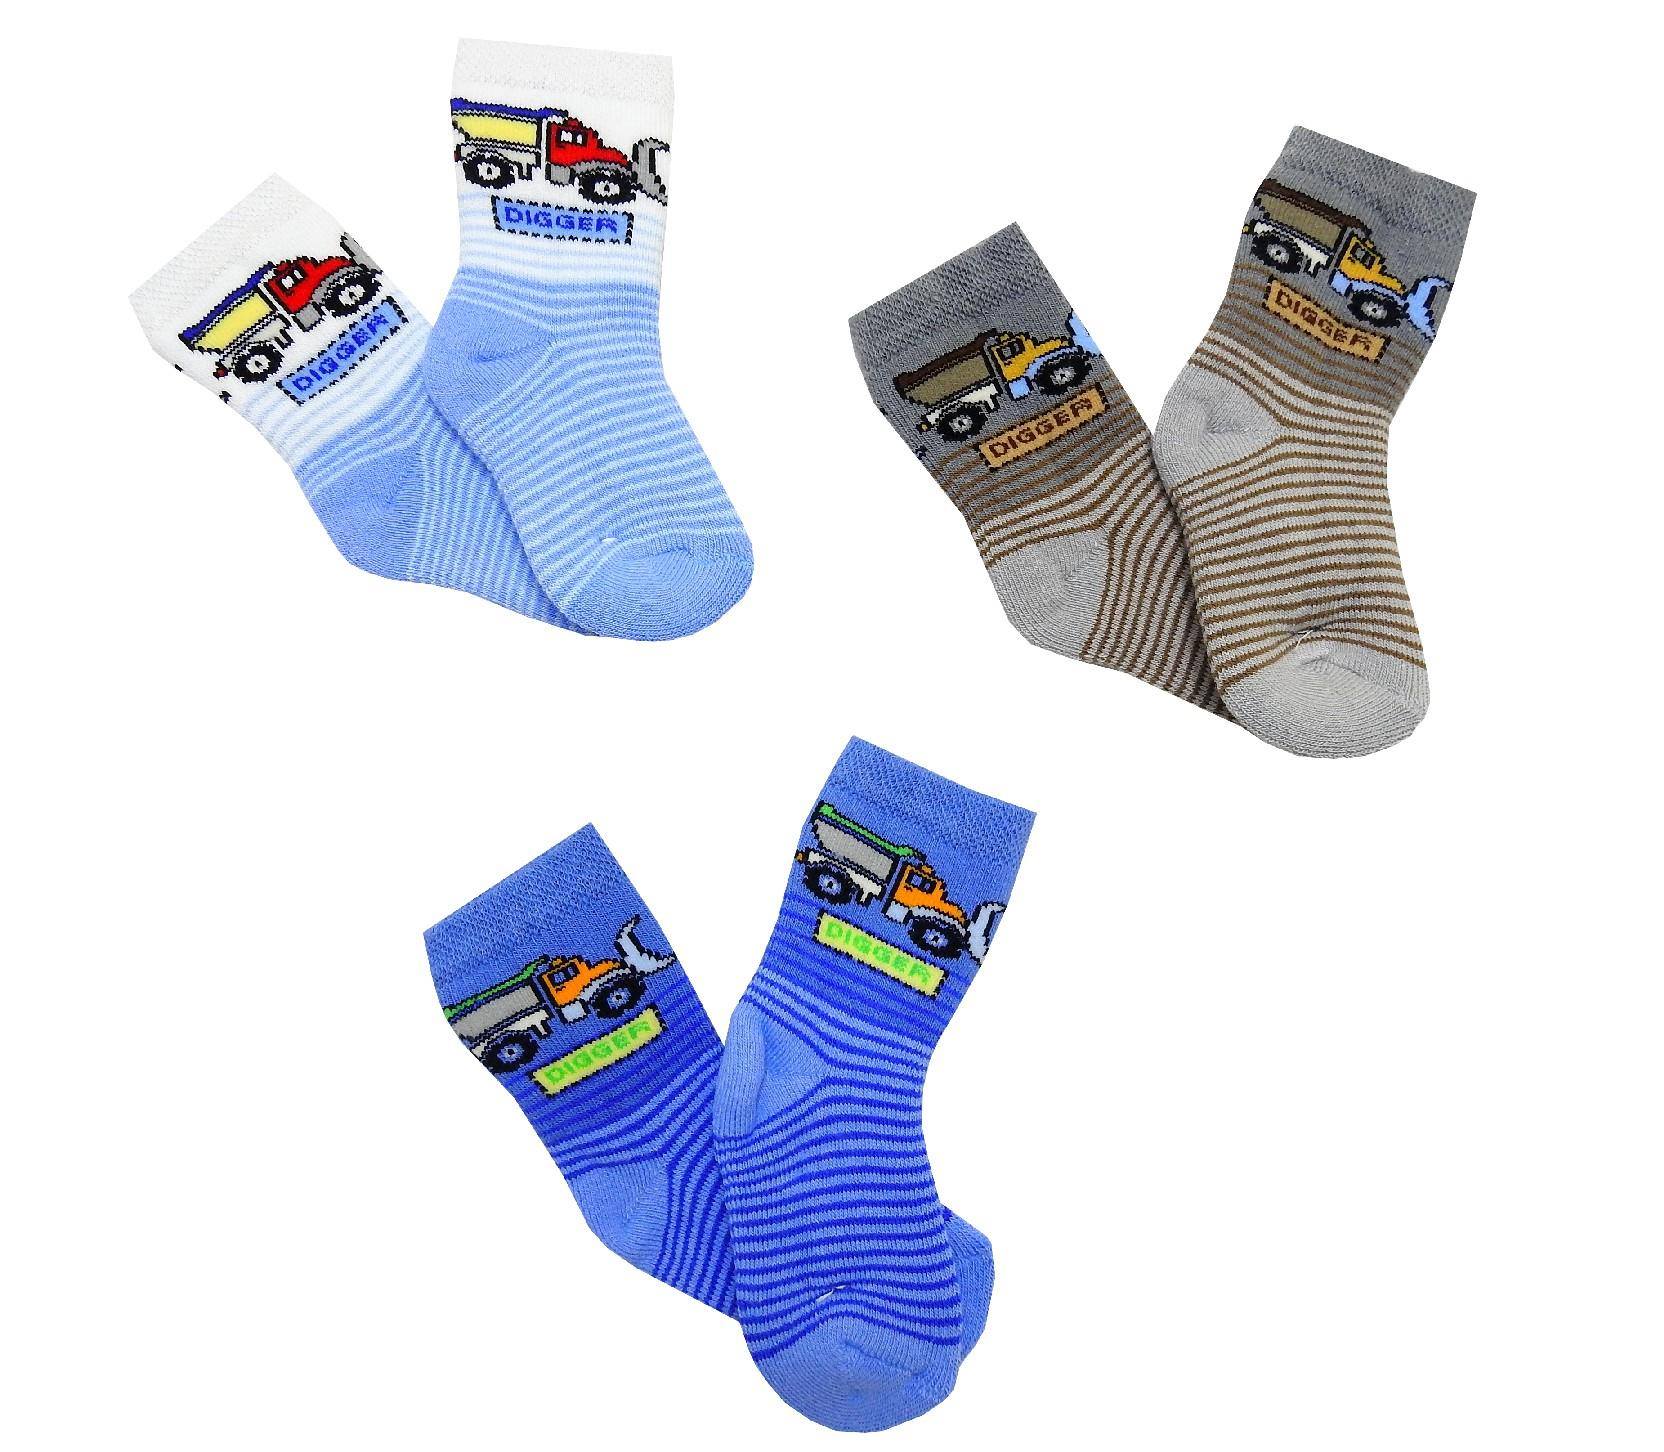 Wholesale digger print socks for baby 12 pieces in package